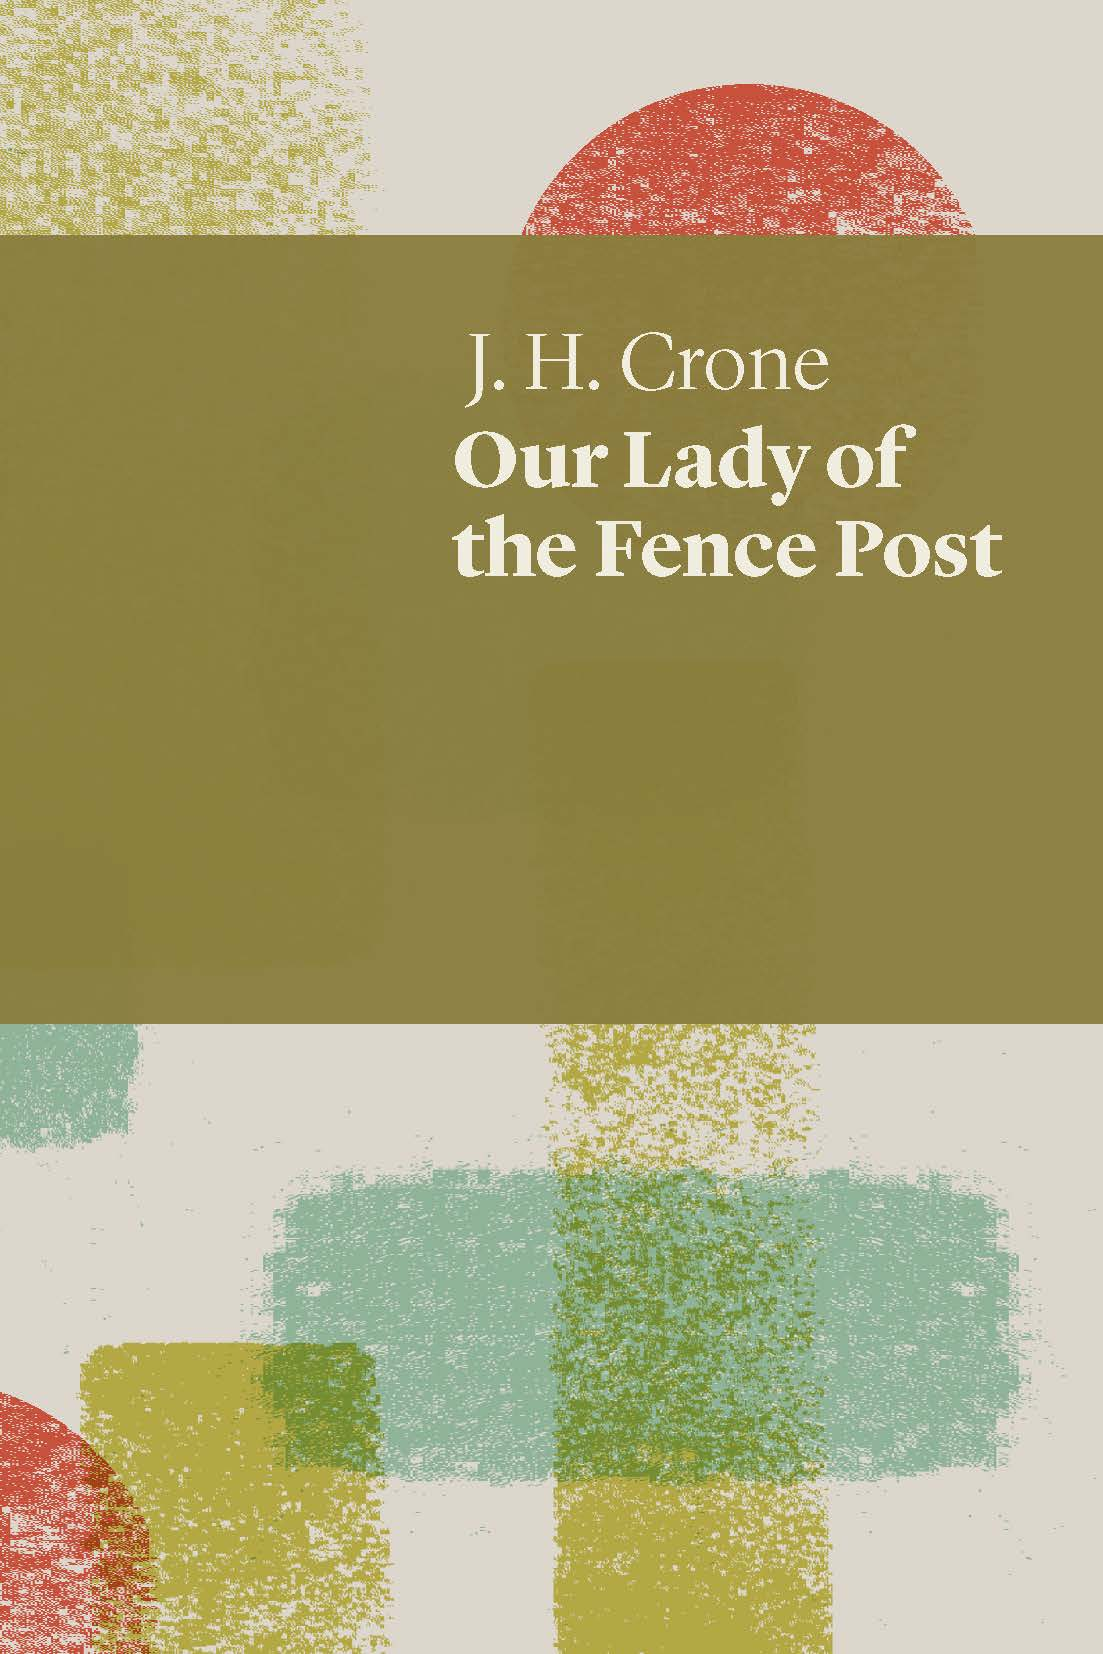 Our Lady of the Fence Post cover